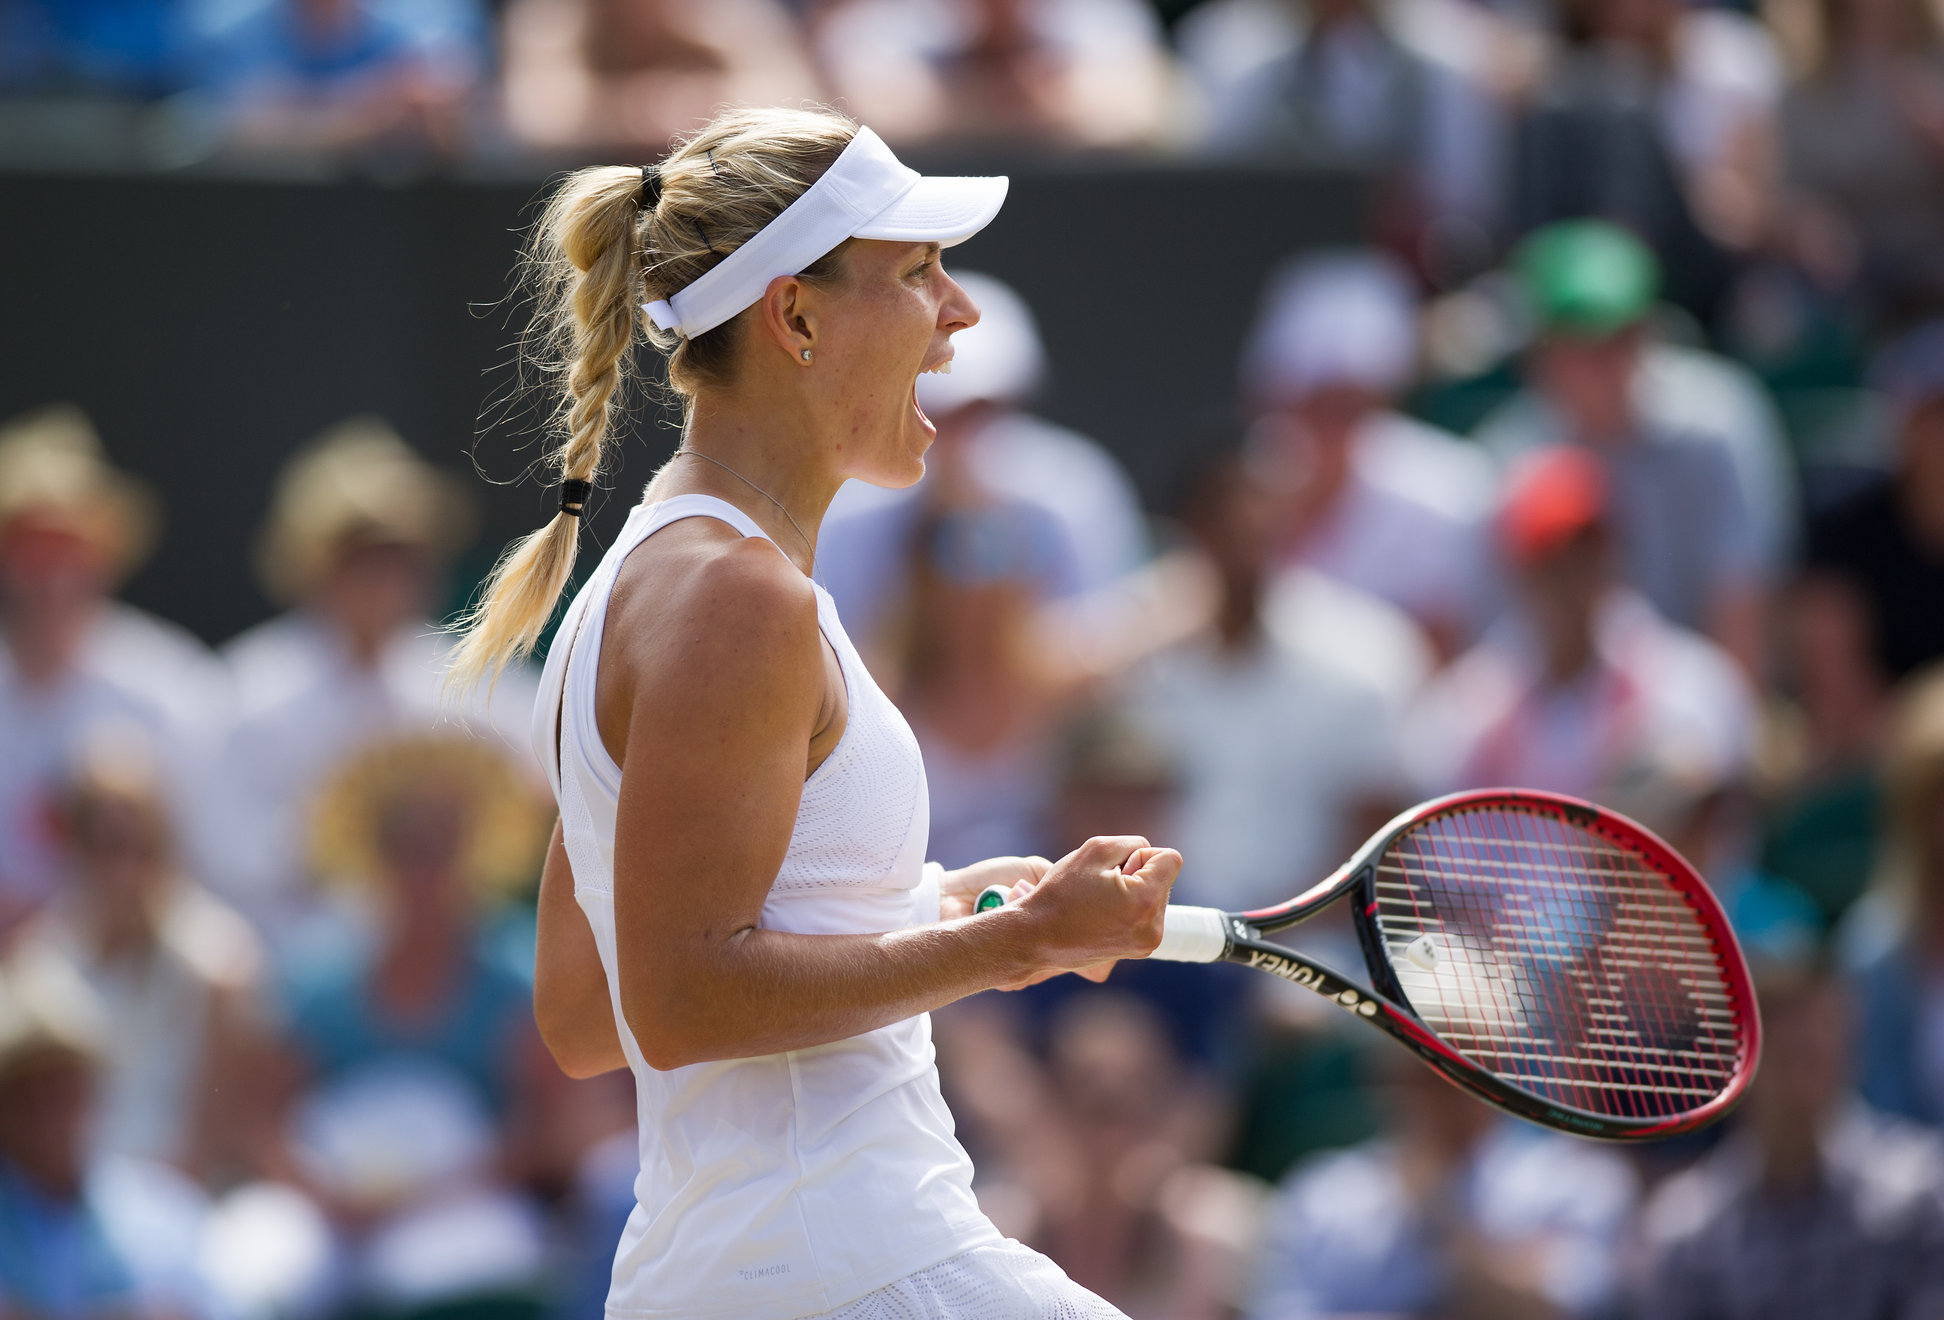 Despite loss, Kerber believes she's on the right path